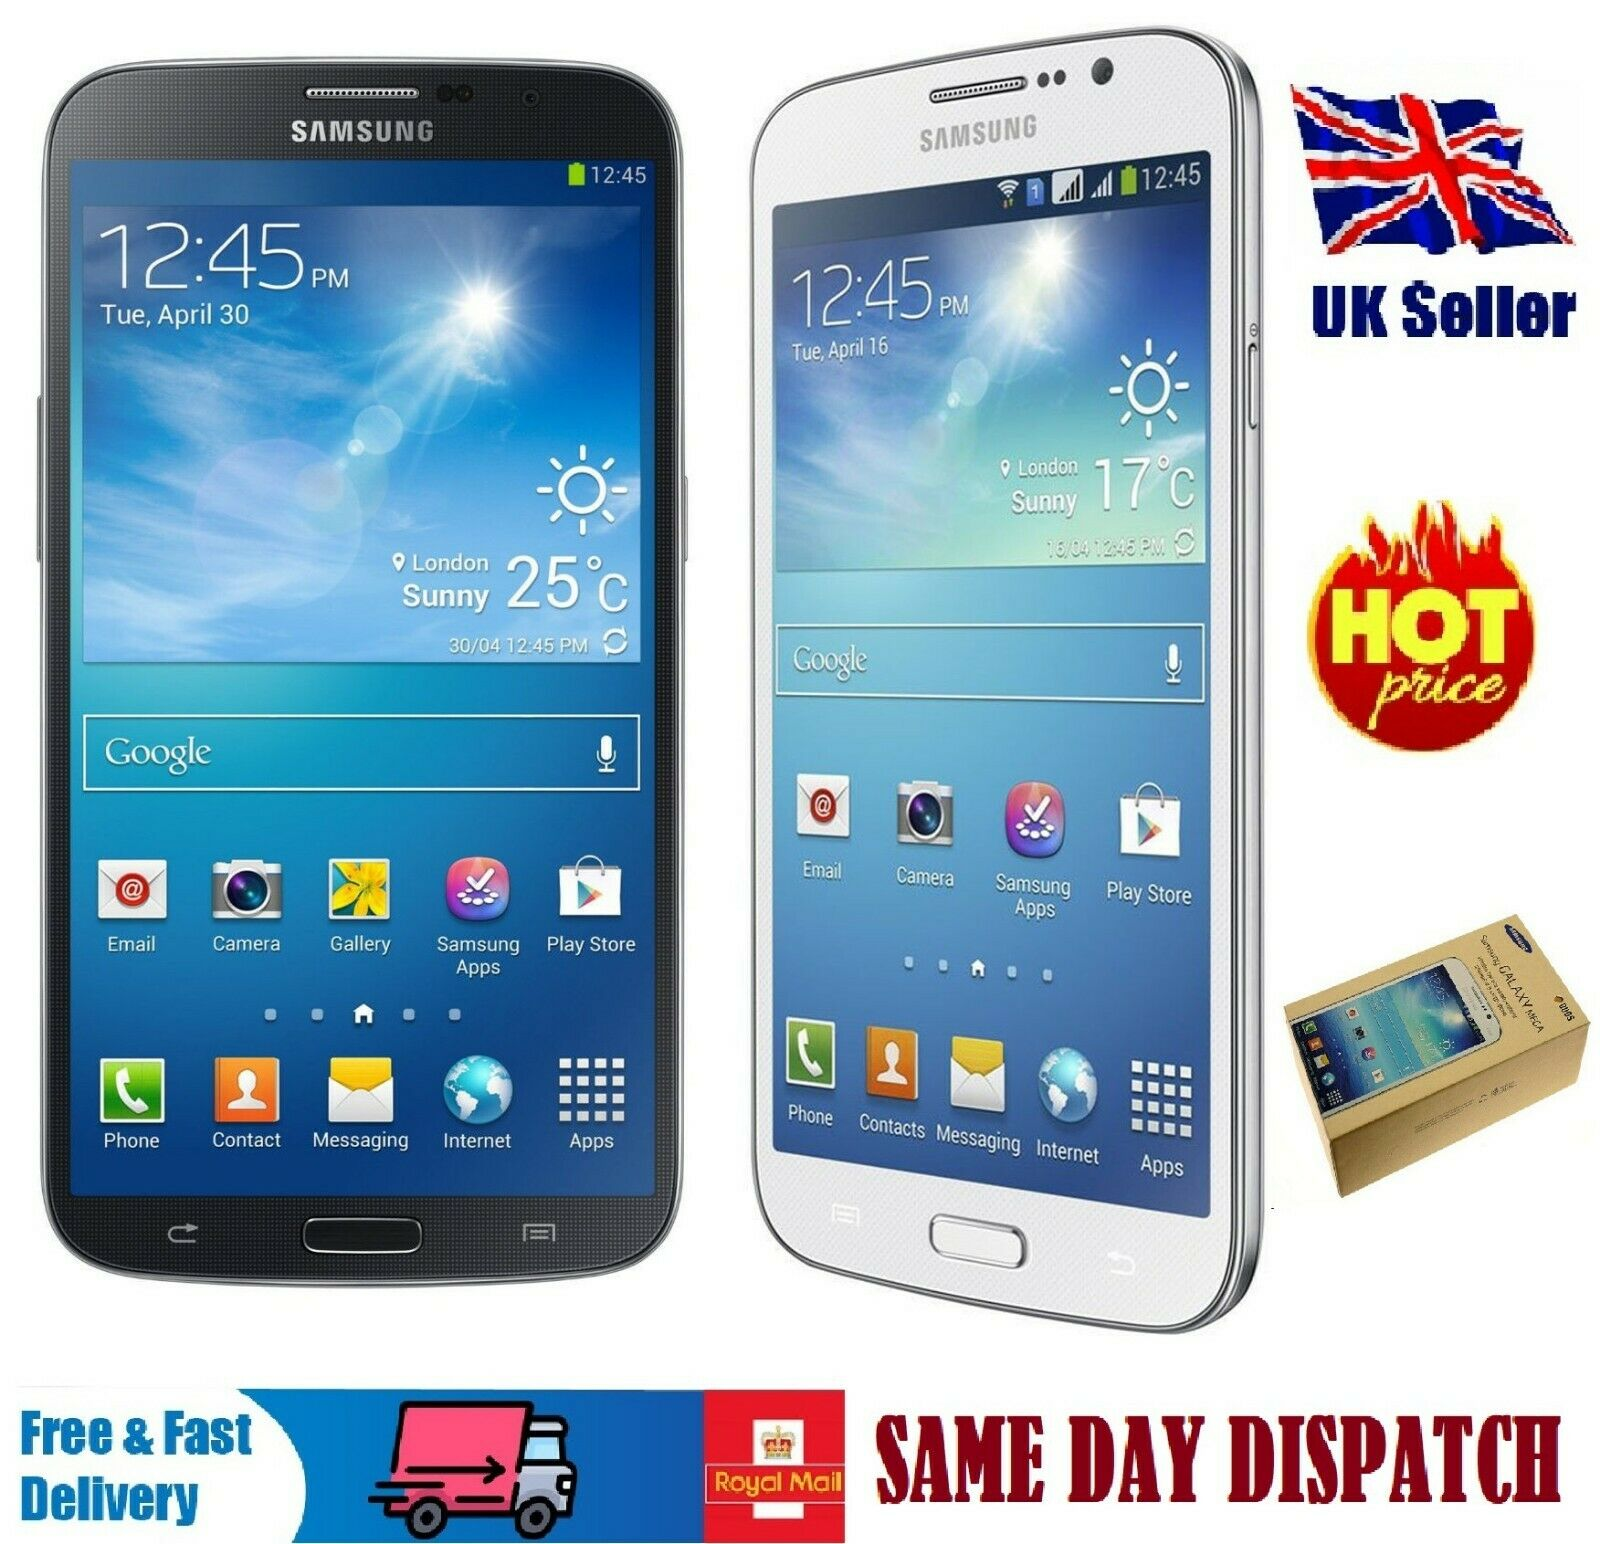 Android Phone - Samsung Galaxy Mega 5.8 GT-I9152 8GB DUAL SIM Unlocked Smart Phone - wihte/black